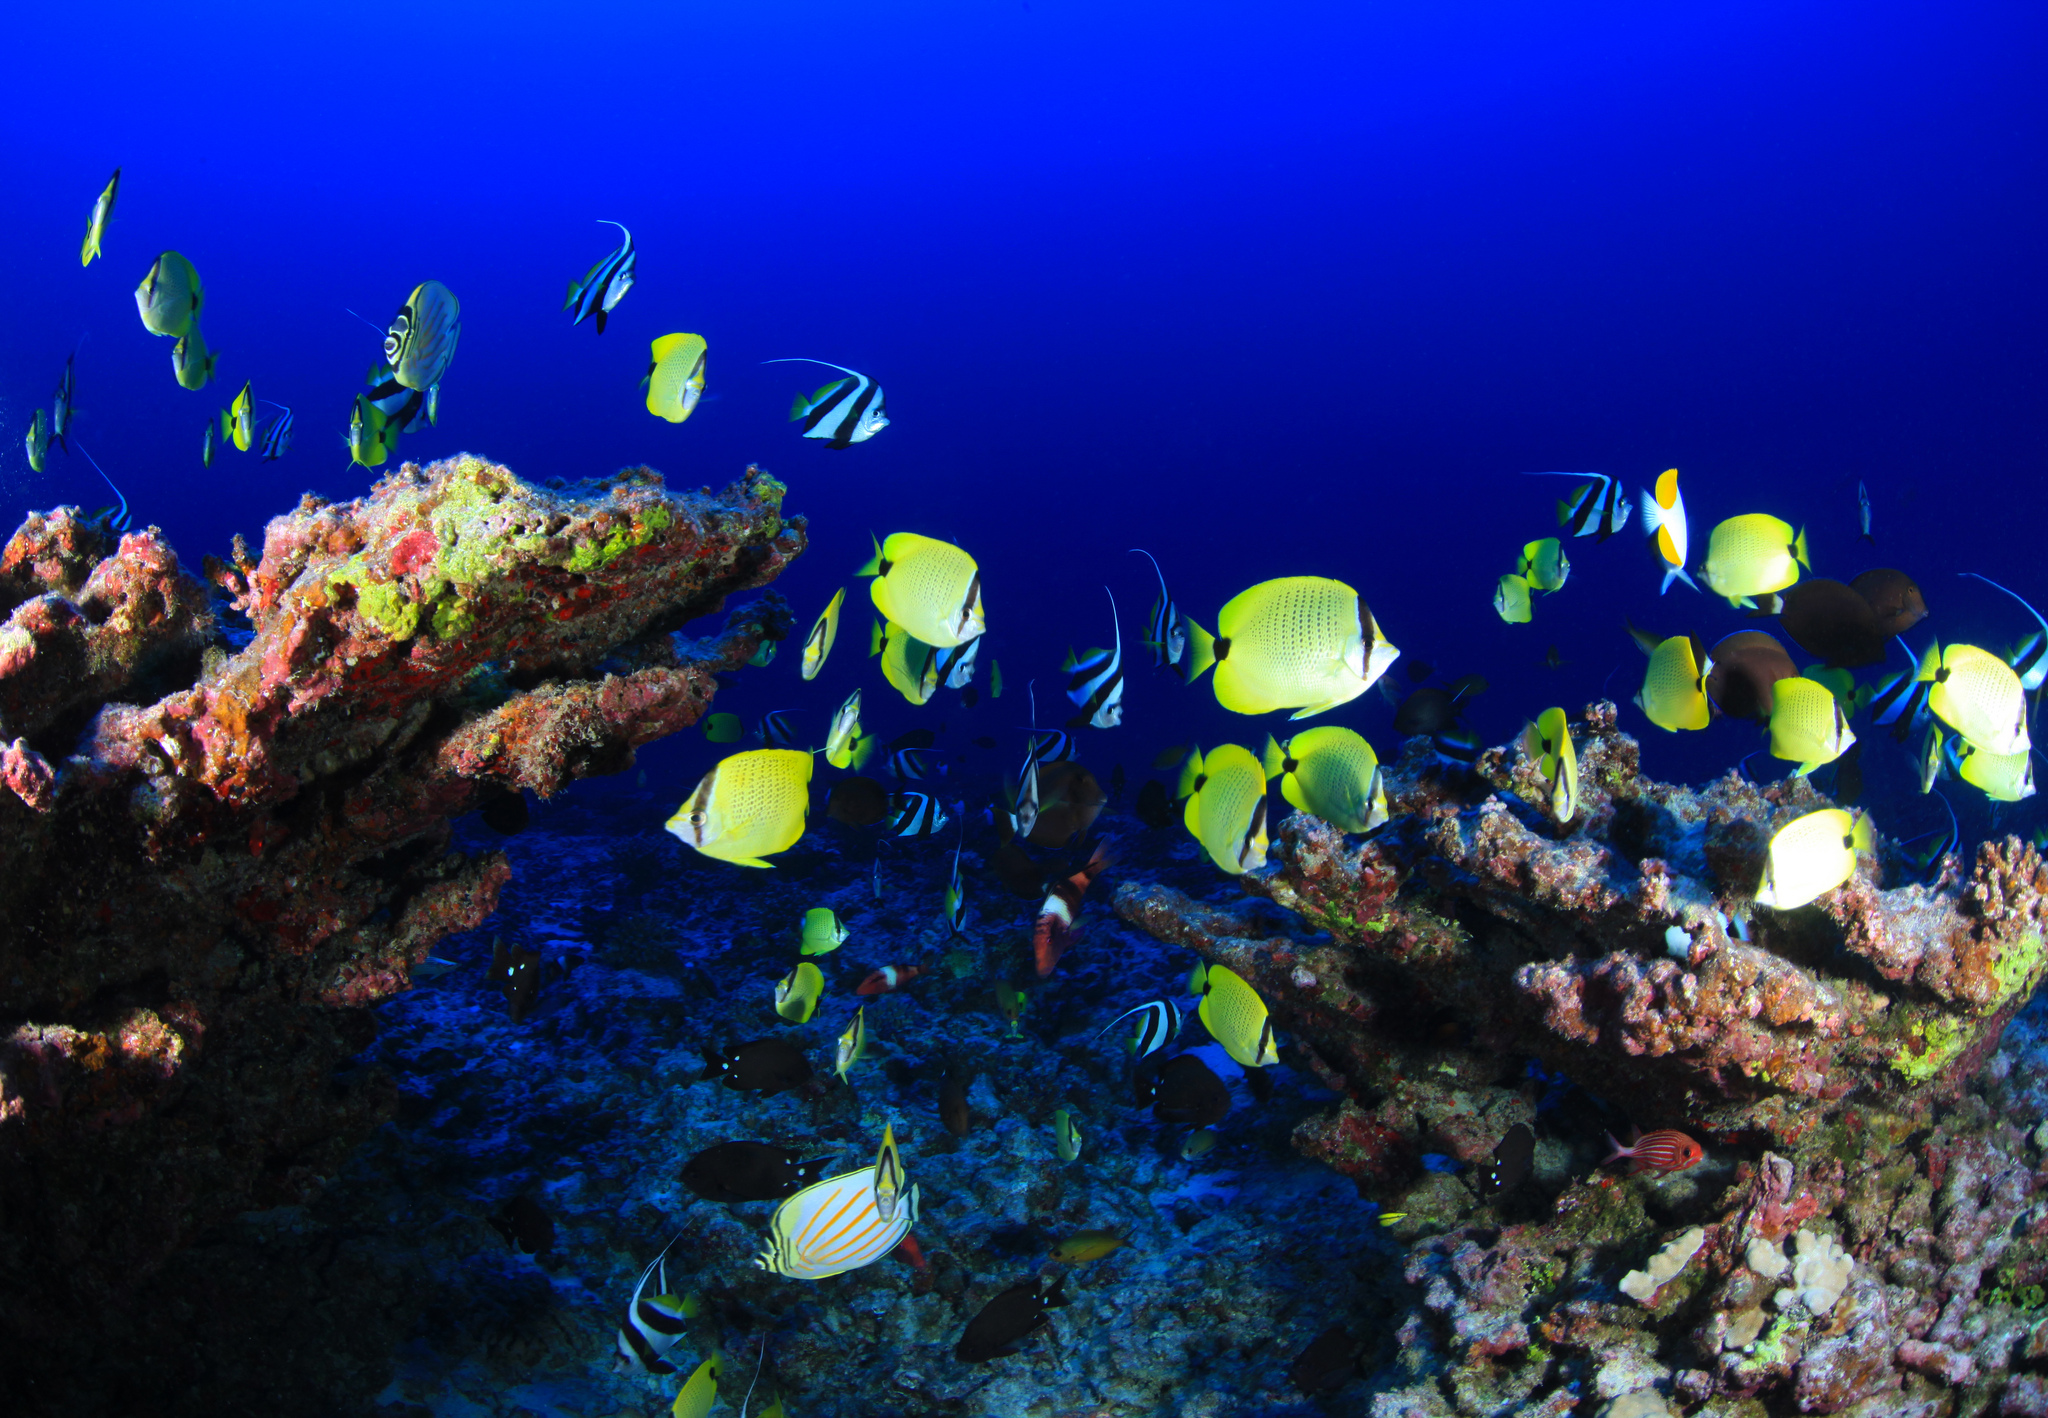 tropical fish swimming around healthy coral reef